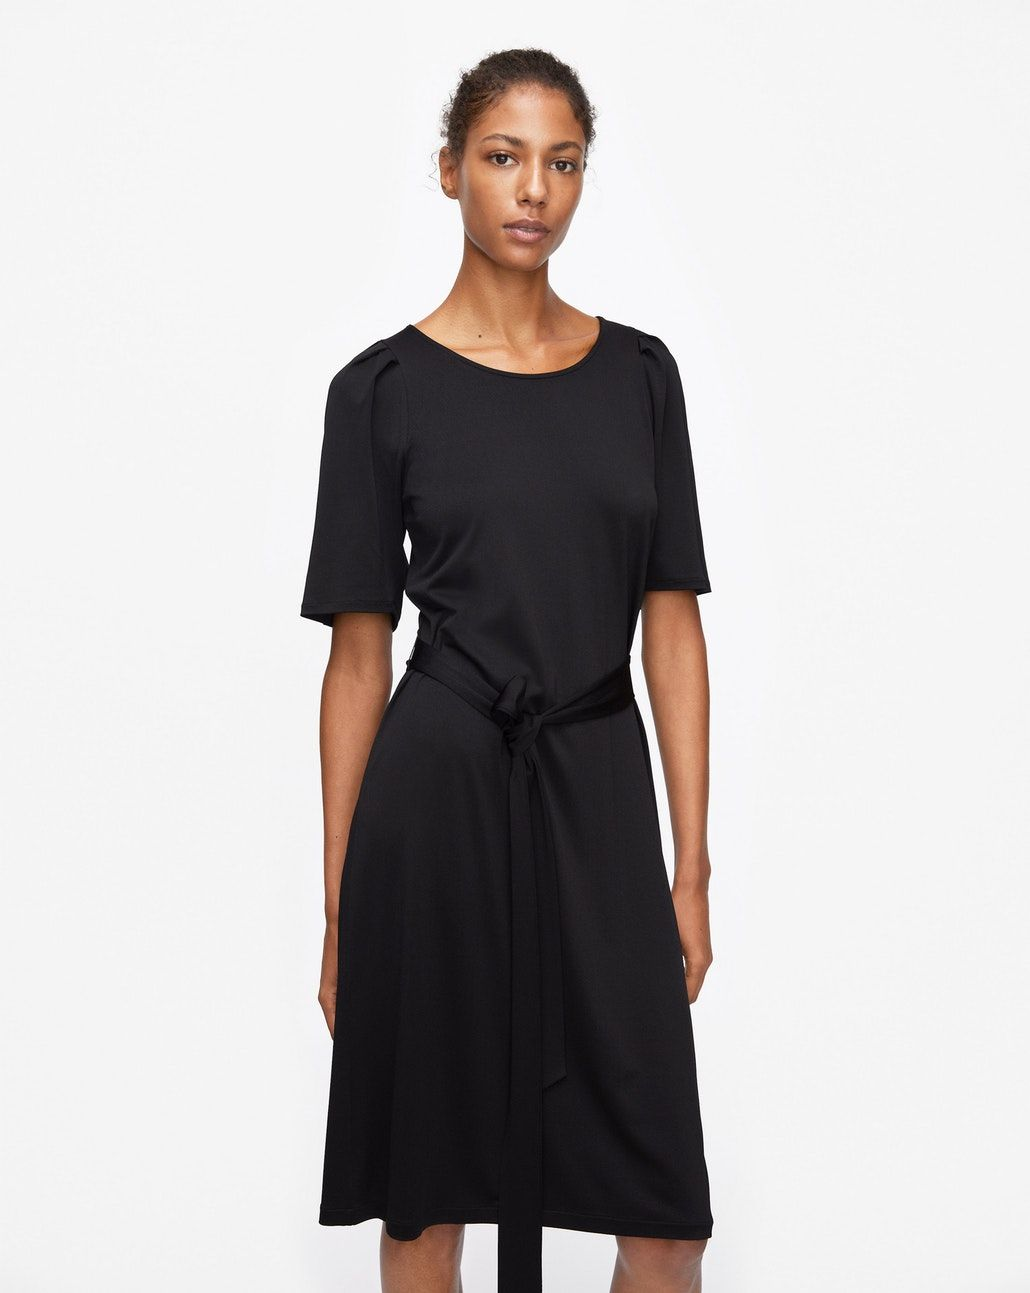 c88f19bc4 Tie Waist Pleat Dress Black - New Arrivals - Woman - Filippa K ...